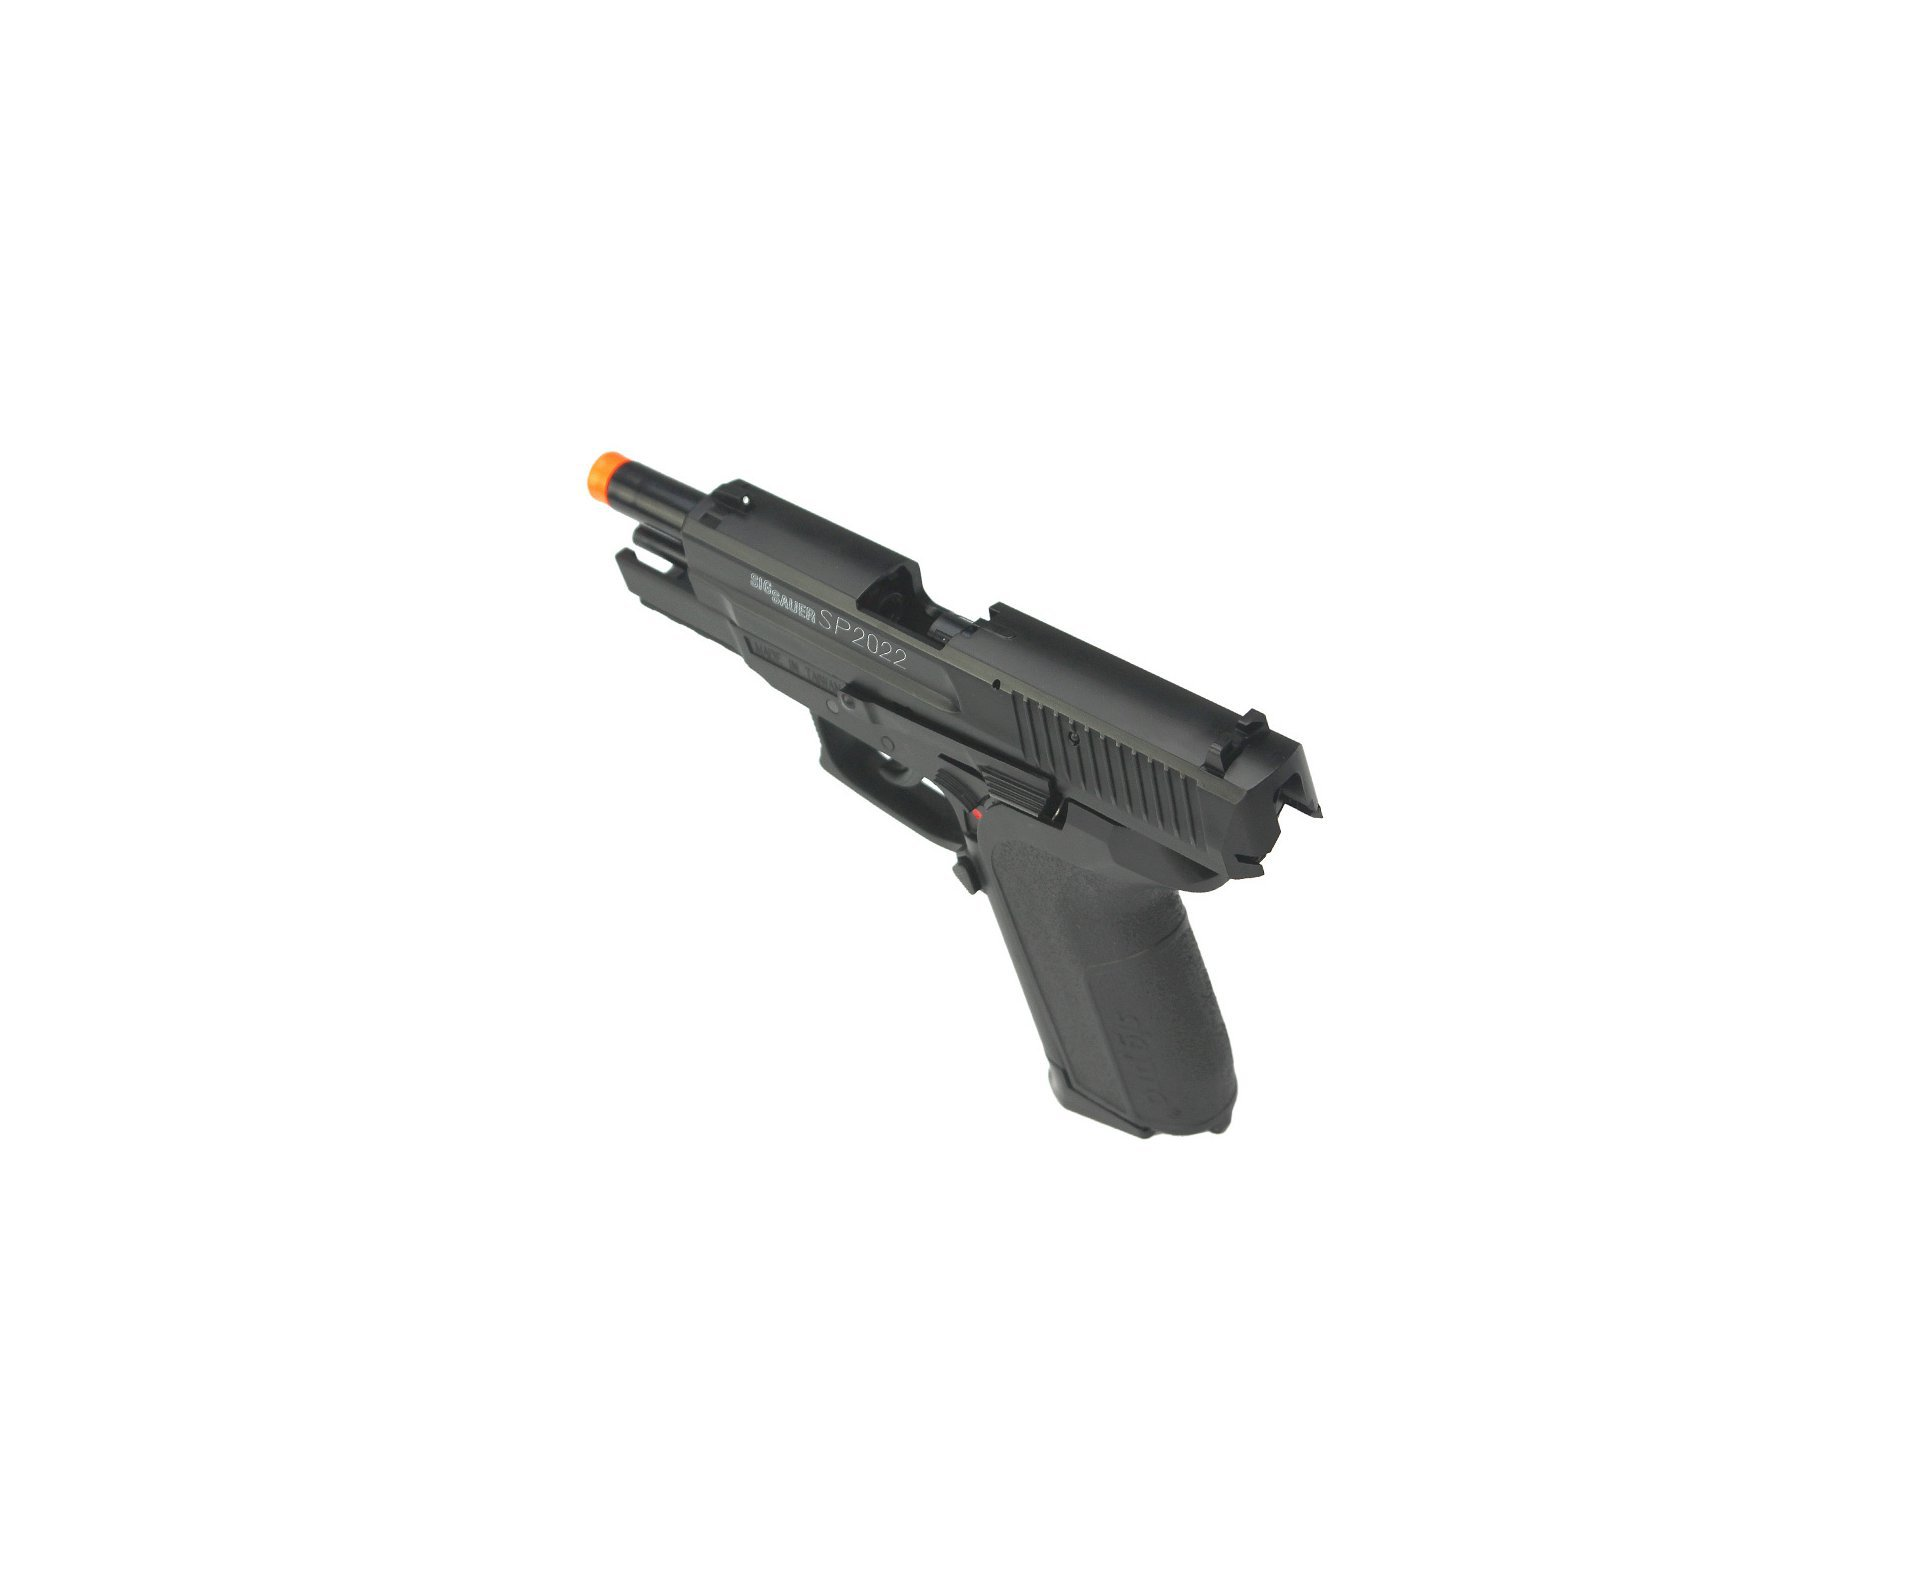 Pistola De Airsoft Sig Sauer Sp2022 Metal - Cal 6,0mm - Cybergun